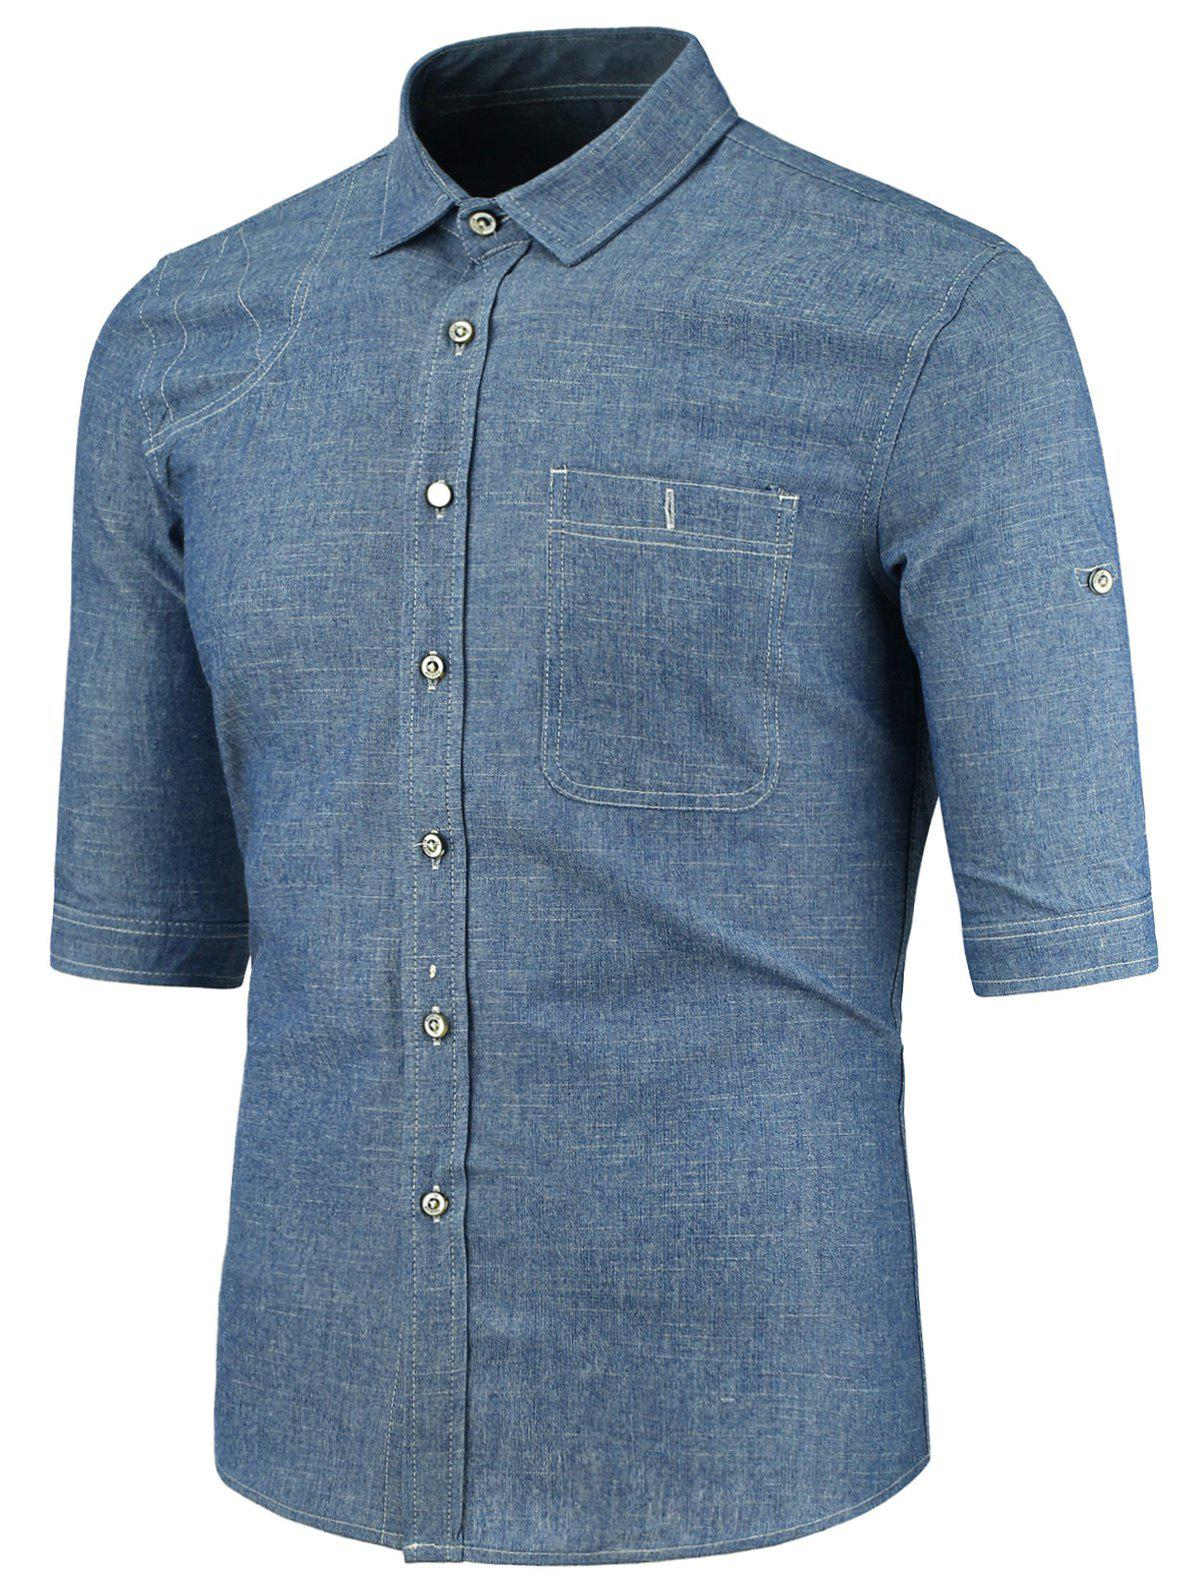 2018 Button Pocket Half Sleeve Denim Shirt Blue L In